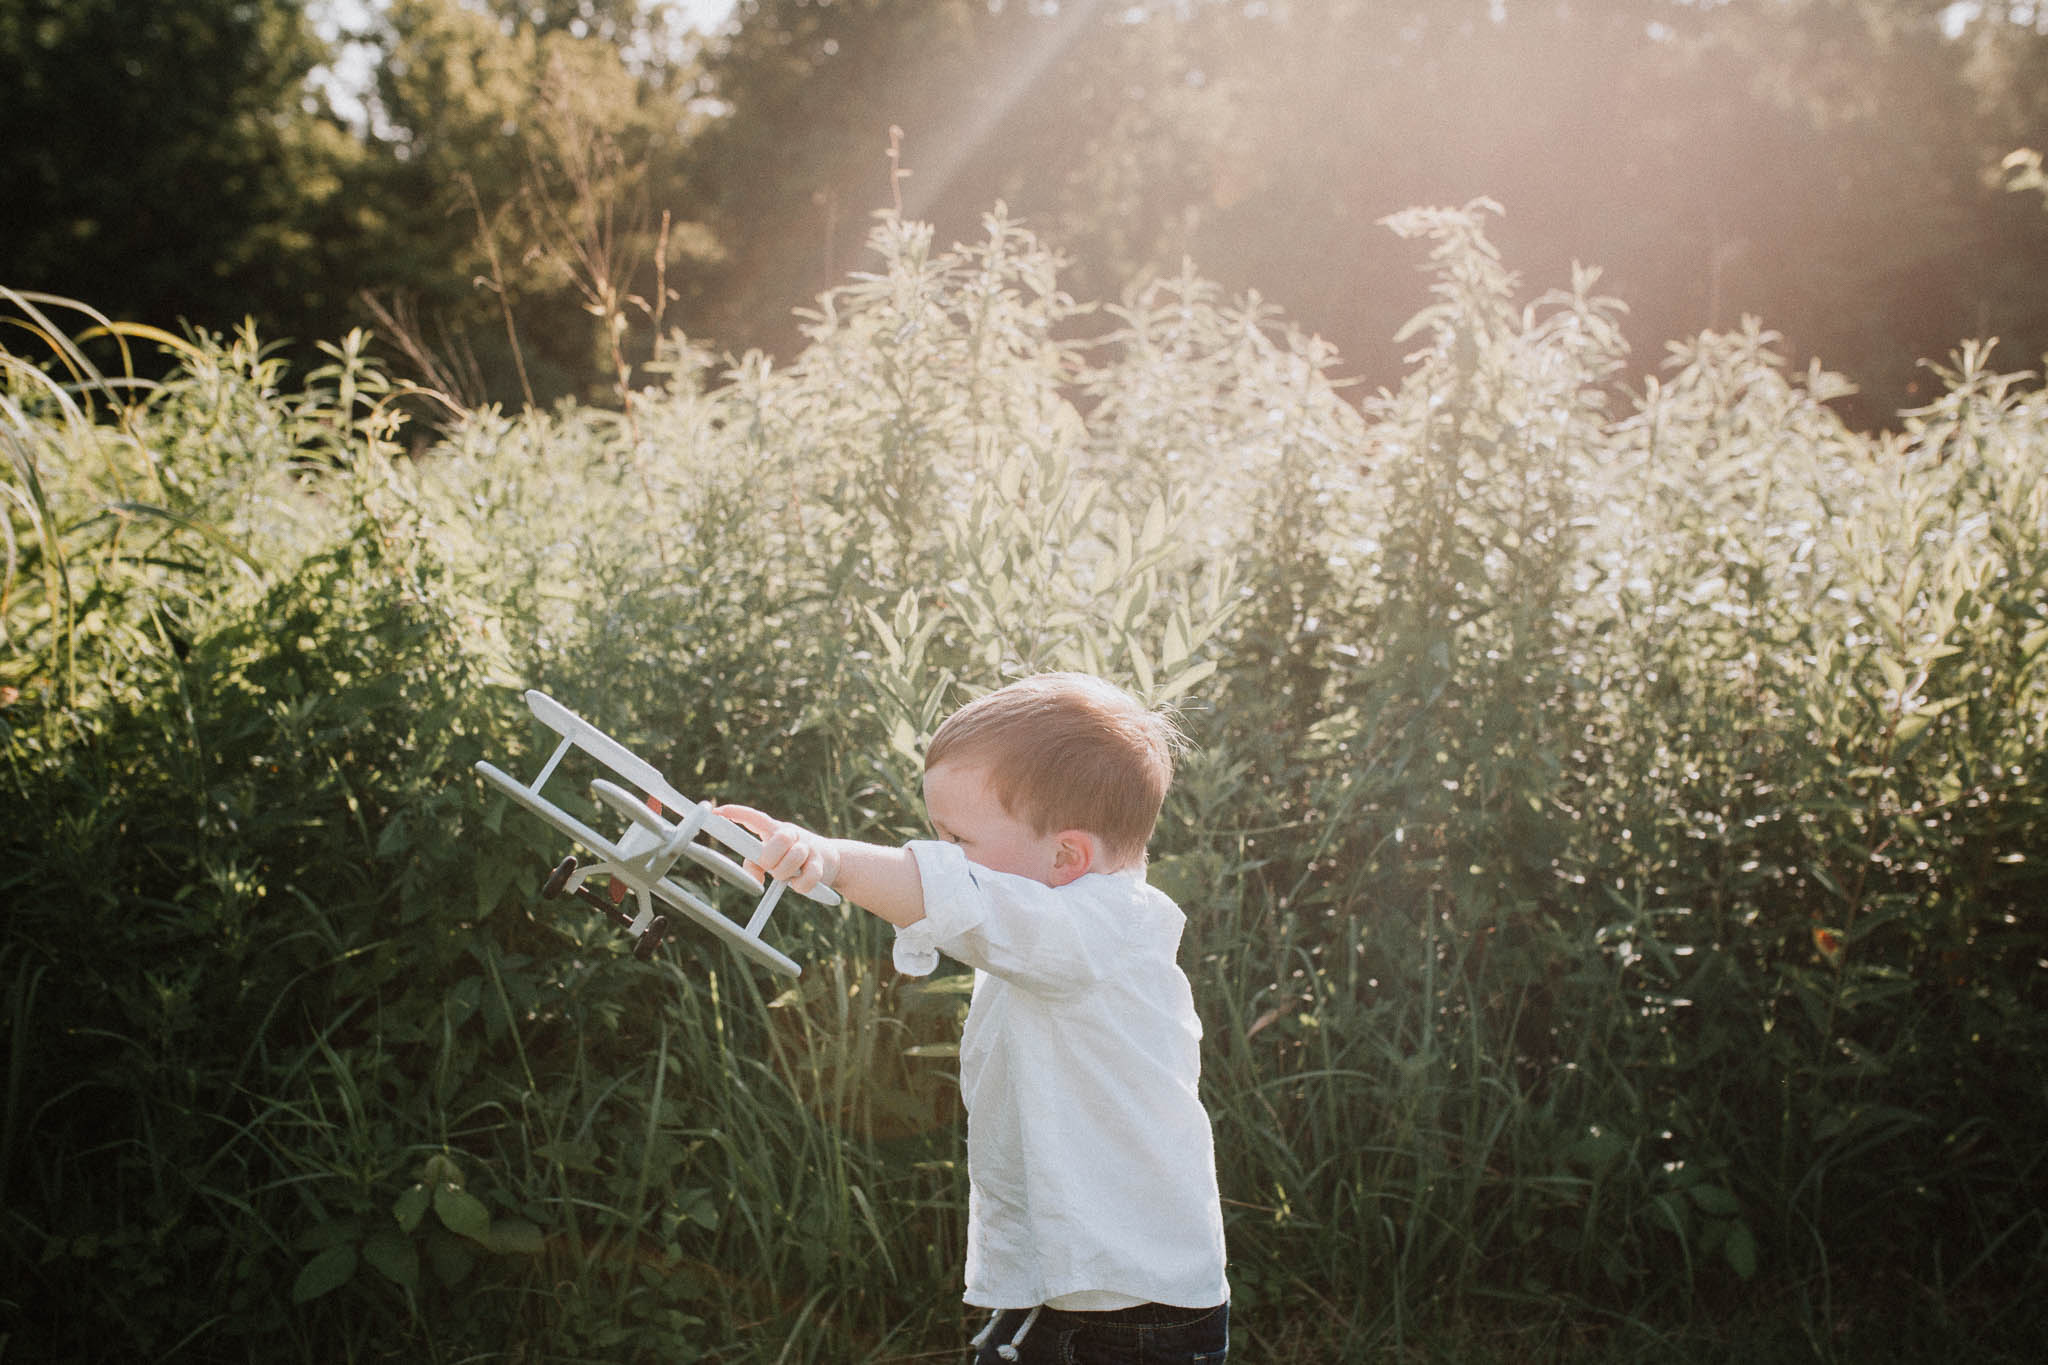 Toddler with a wooden airplane flies it through the air at Cabell's Mill in Chantilly, Virginia